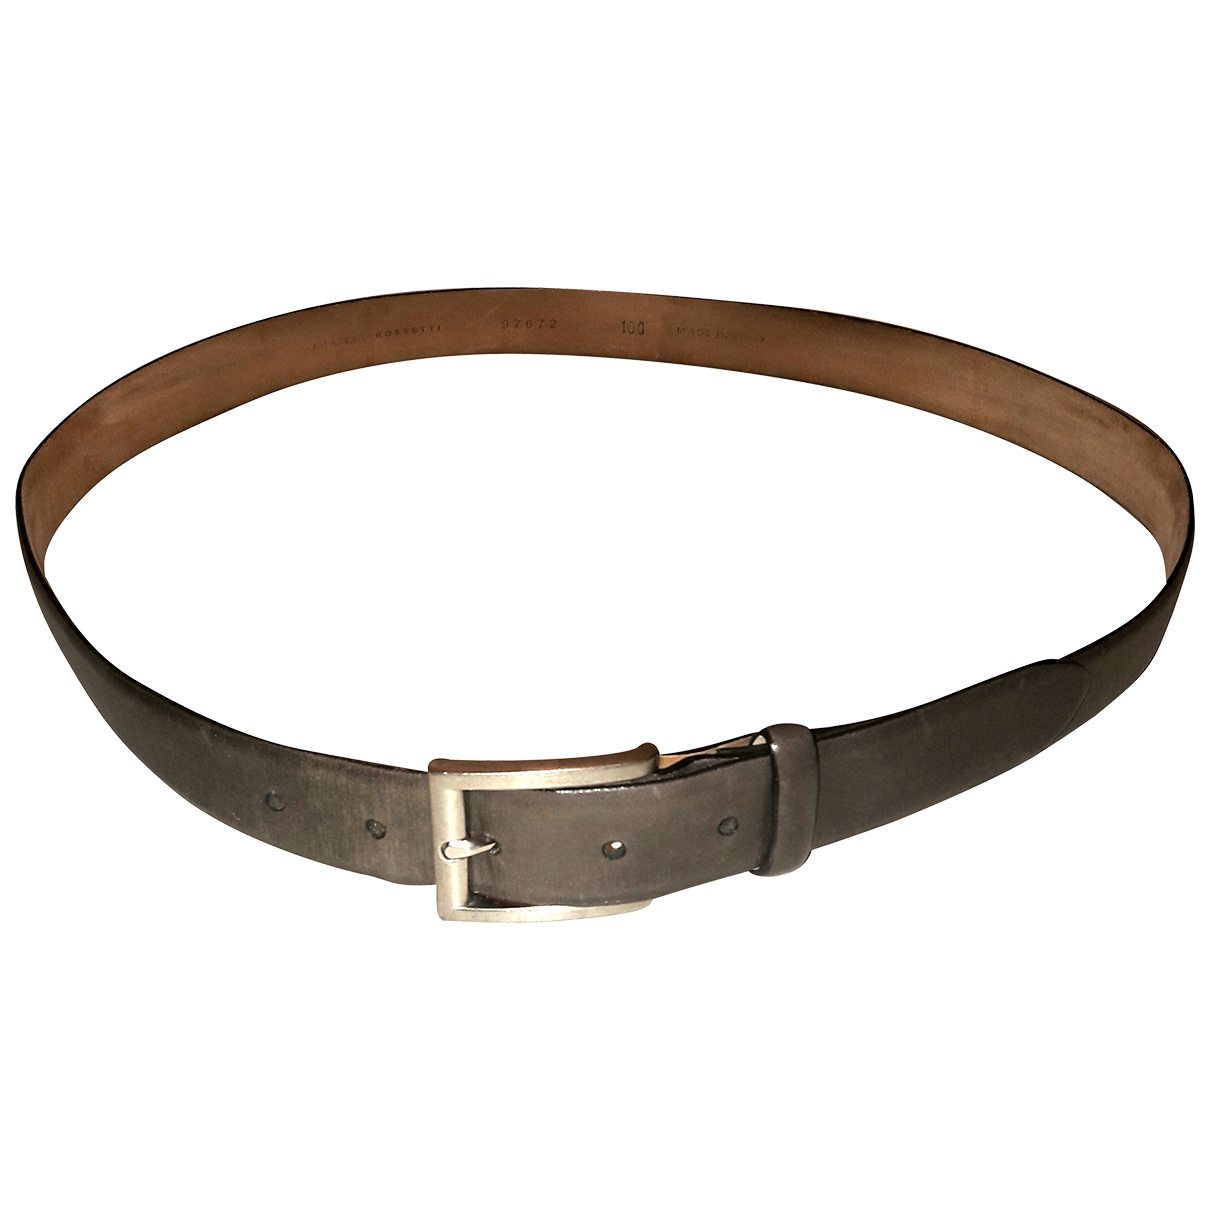 Fratelli Rossetti N Green Leather belt for Men 100 cm